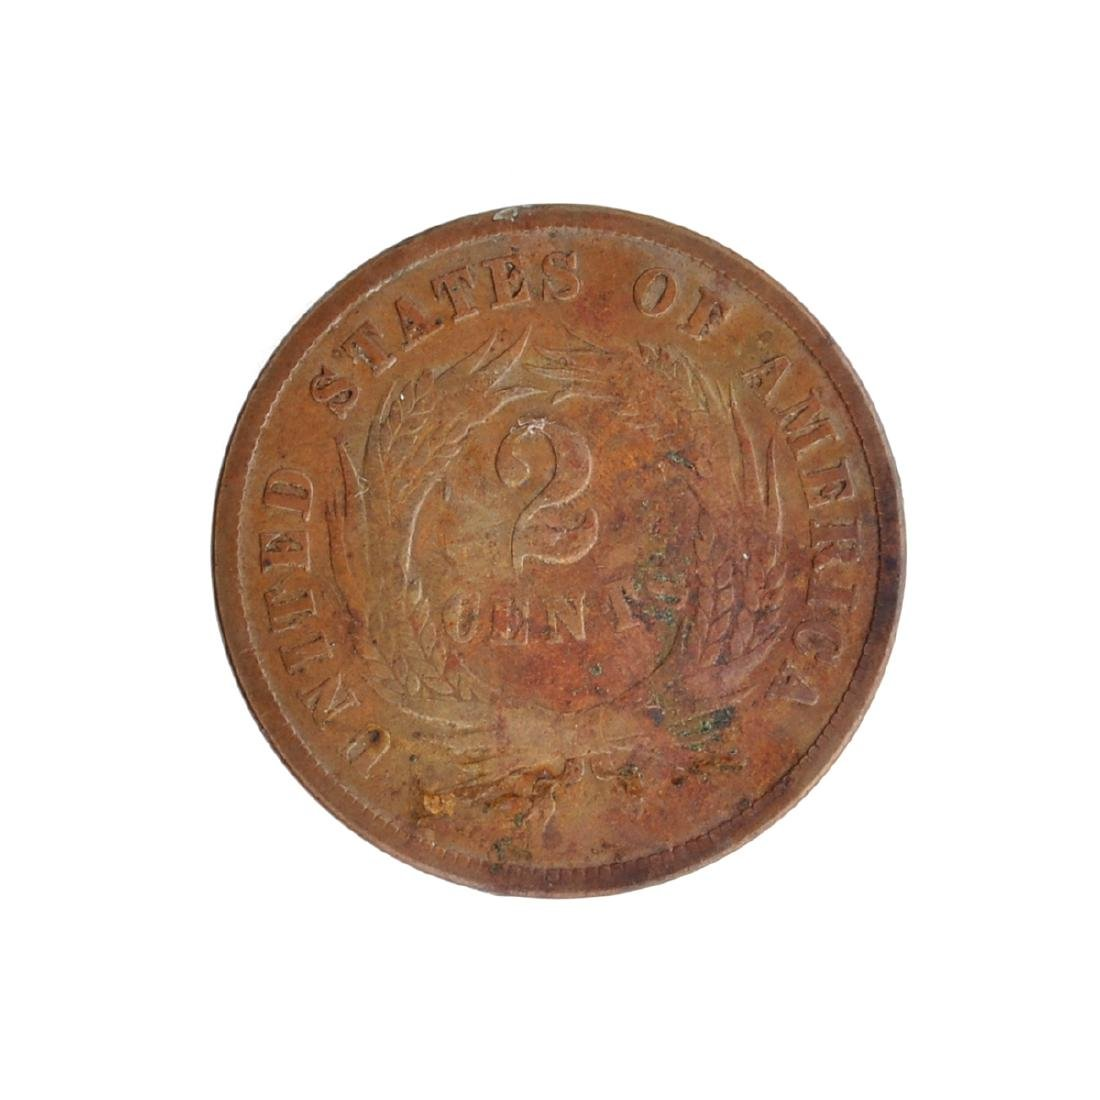 1868 Two-Cent Coin - 2